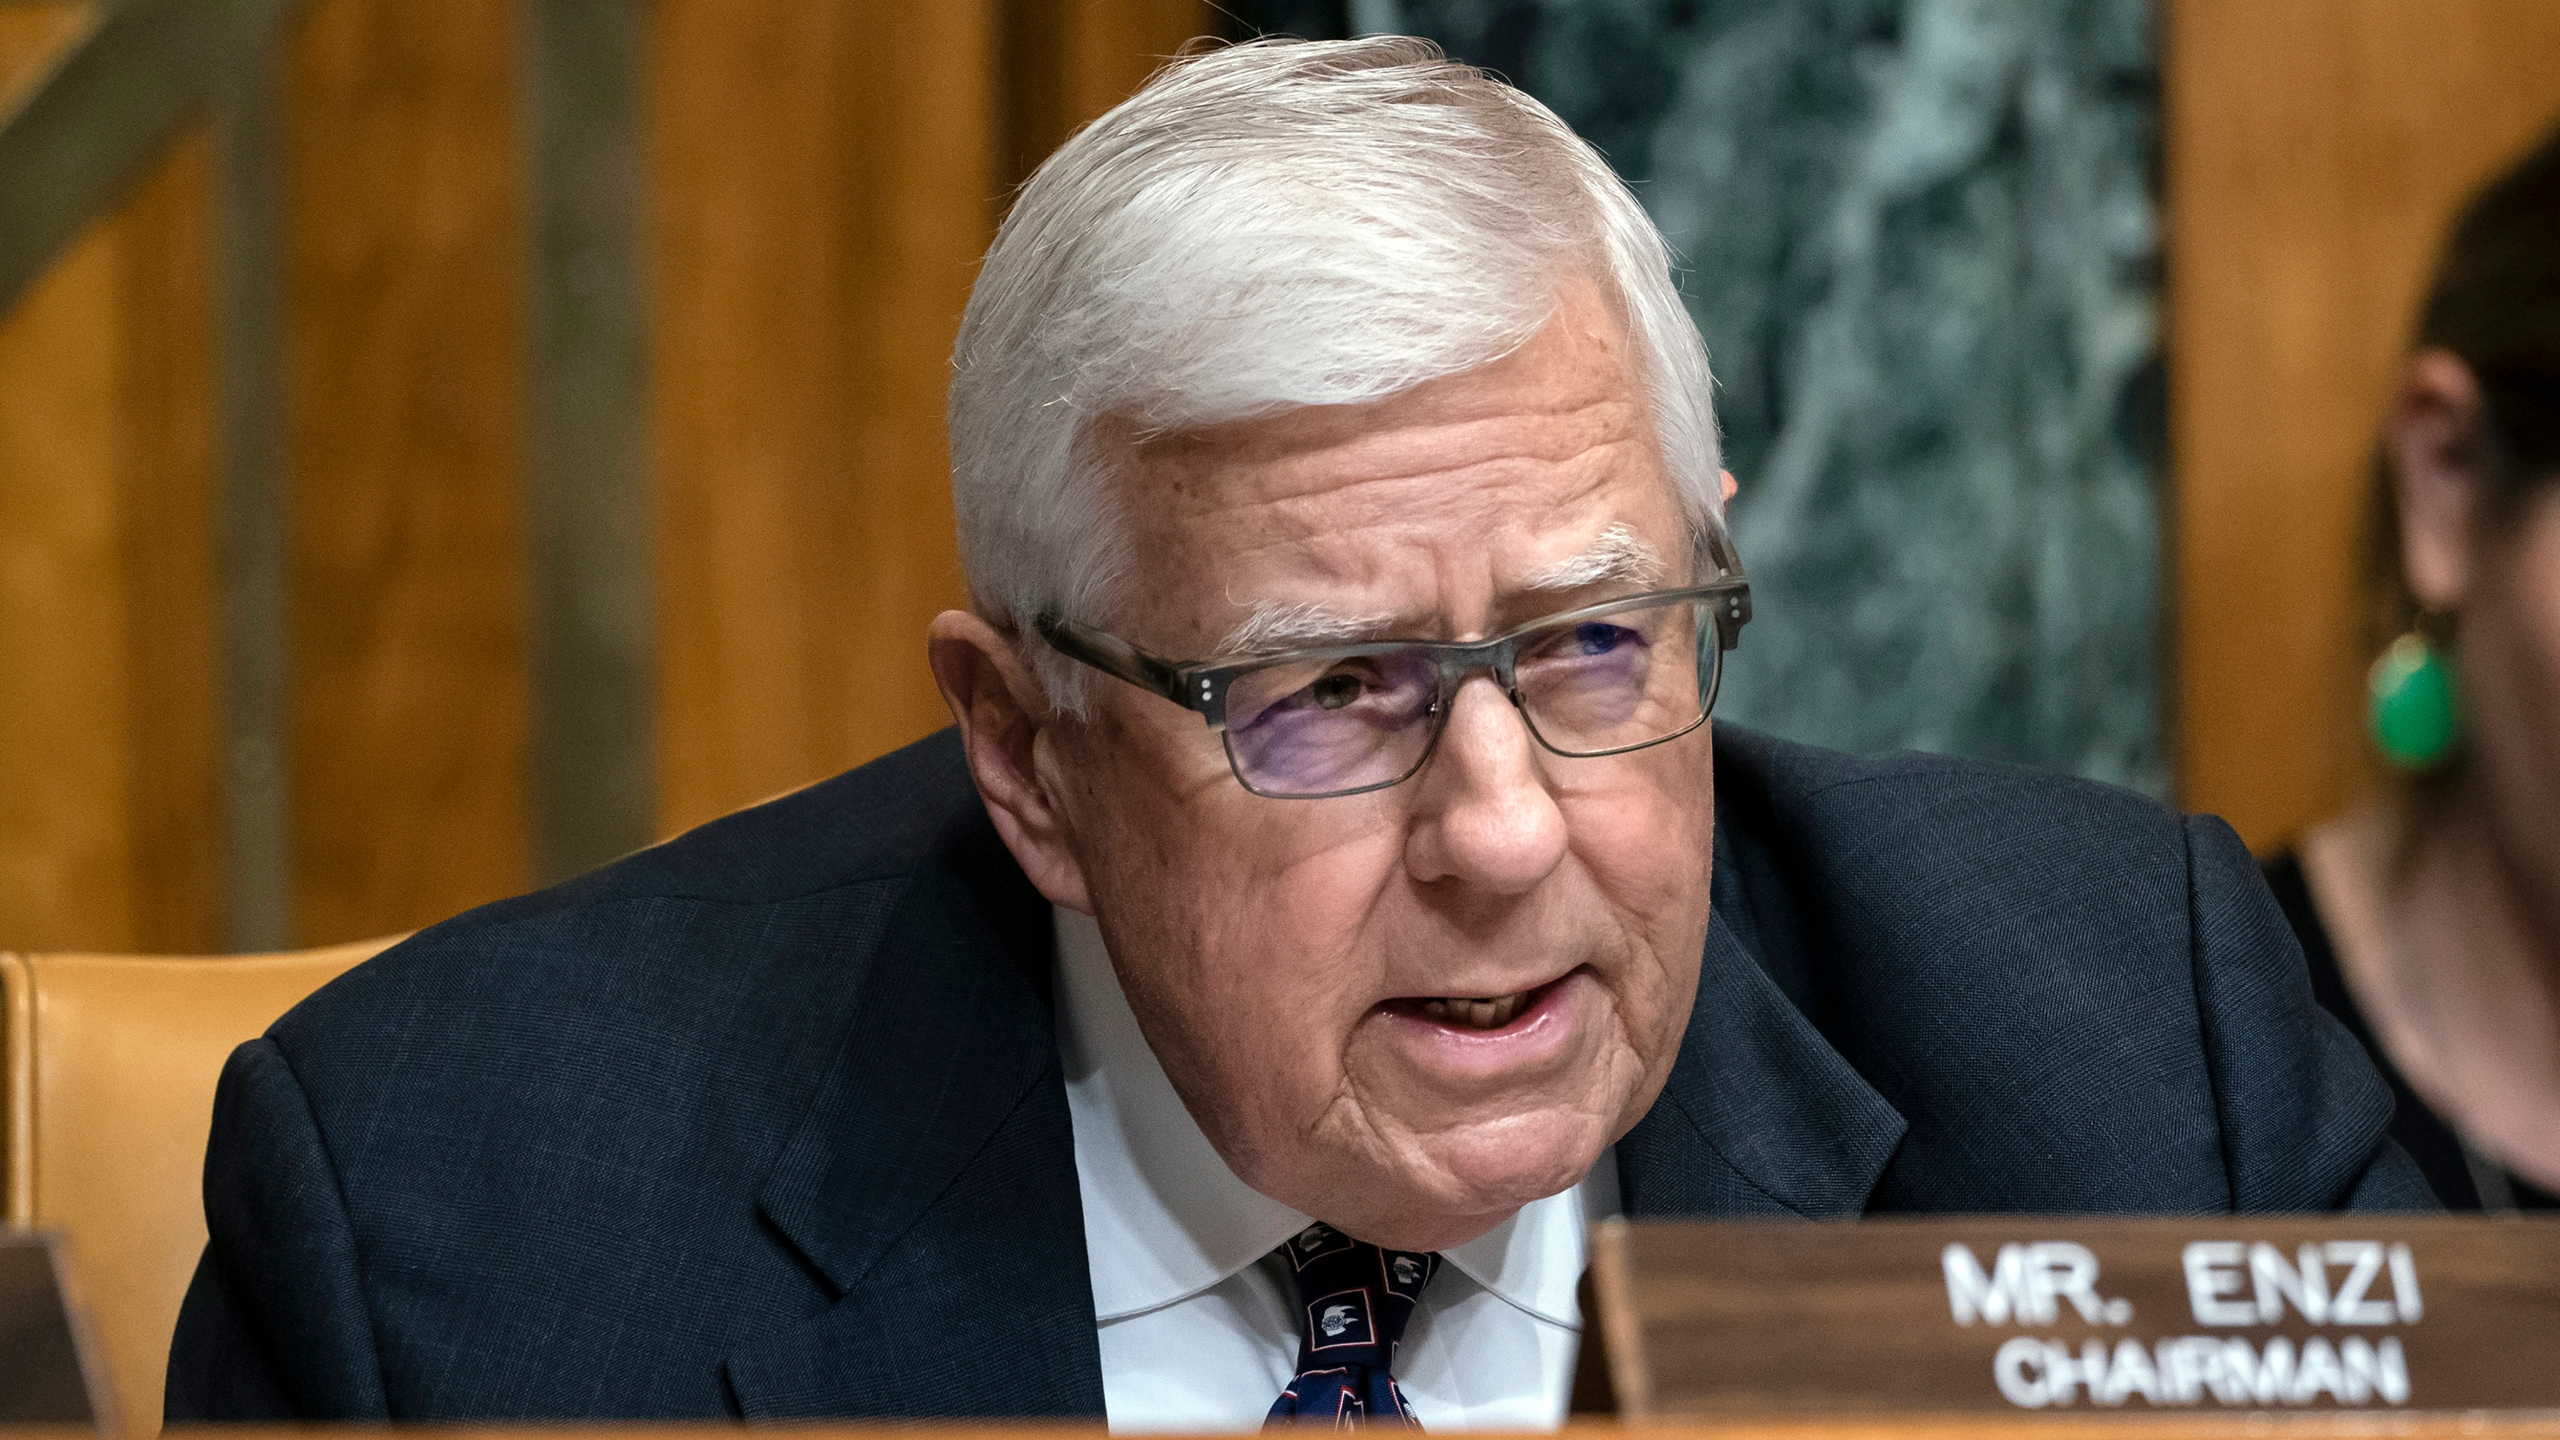 In this March 27, 2019, file photo, Sen. Mike Enzi, R-Wyo., chairman of the Senate Budget Committee, makes an opening statement on the fiscal year 2020 budget resolution, on Capitol Hill in Washington. Recently retired U.S. Sen. Mike Enzi of Wyoming died Monday, July 26, 2021. He was 77 years old. (AP Photo/J. Scott Applewhite, File)